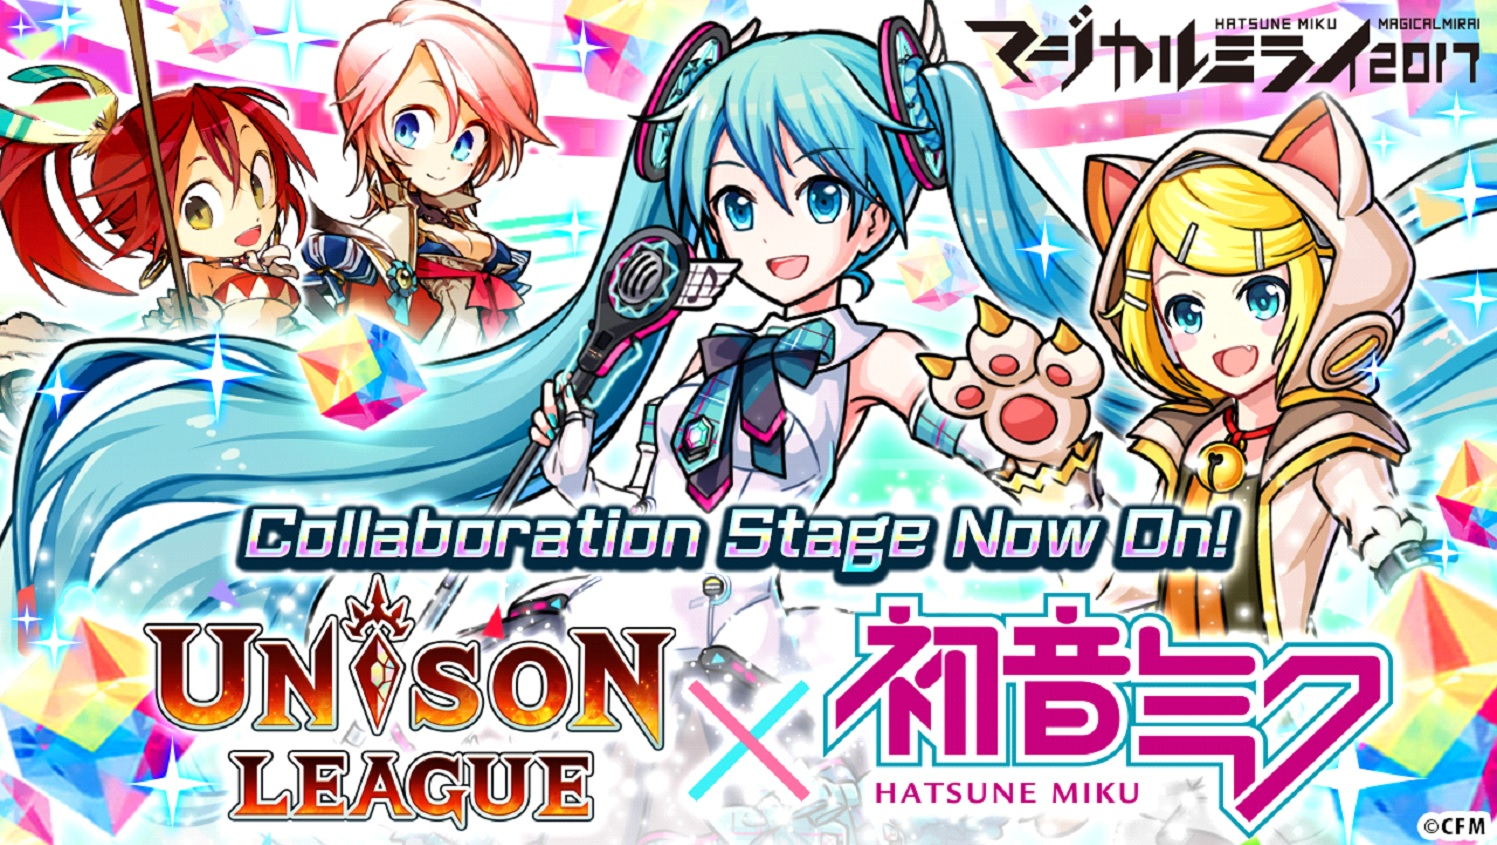 Singing sensation Hatsune Miku joins the RPG action in Unison League's latest tie-in